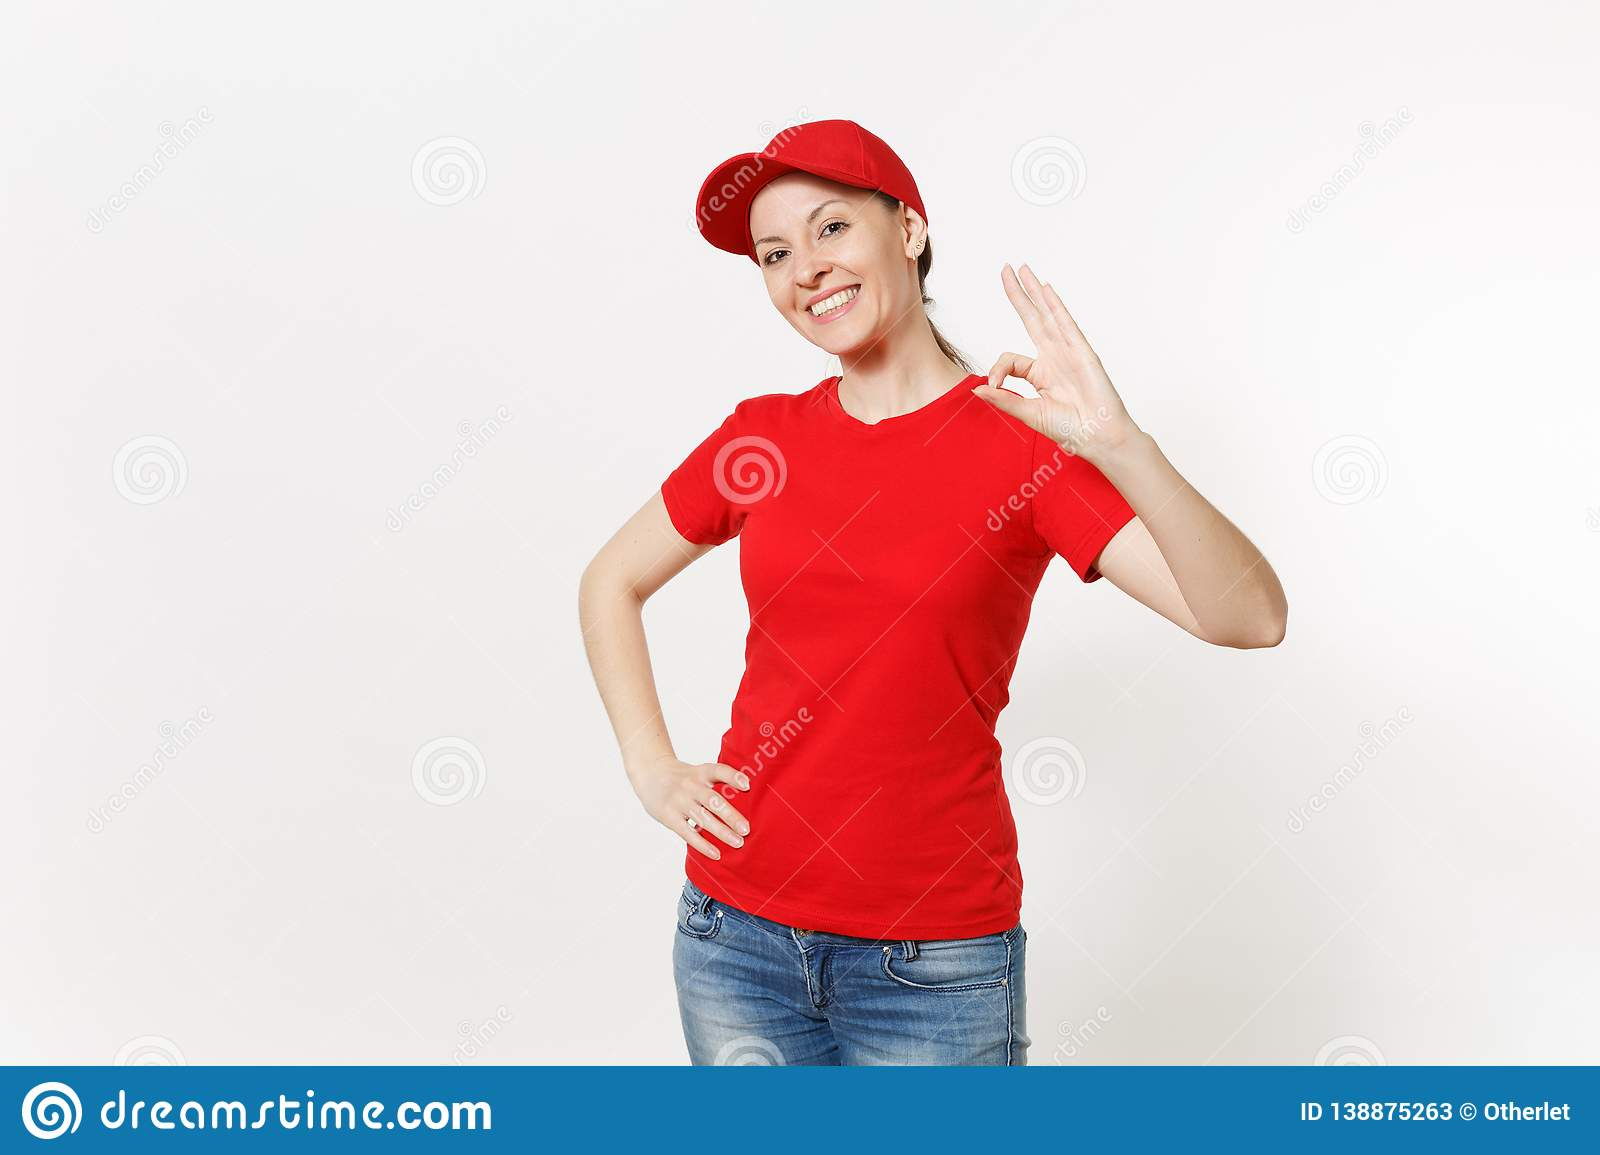 Delivery friendly woman in red uniform isolated on white background. Professional caucasian female in cap, t-shirt